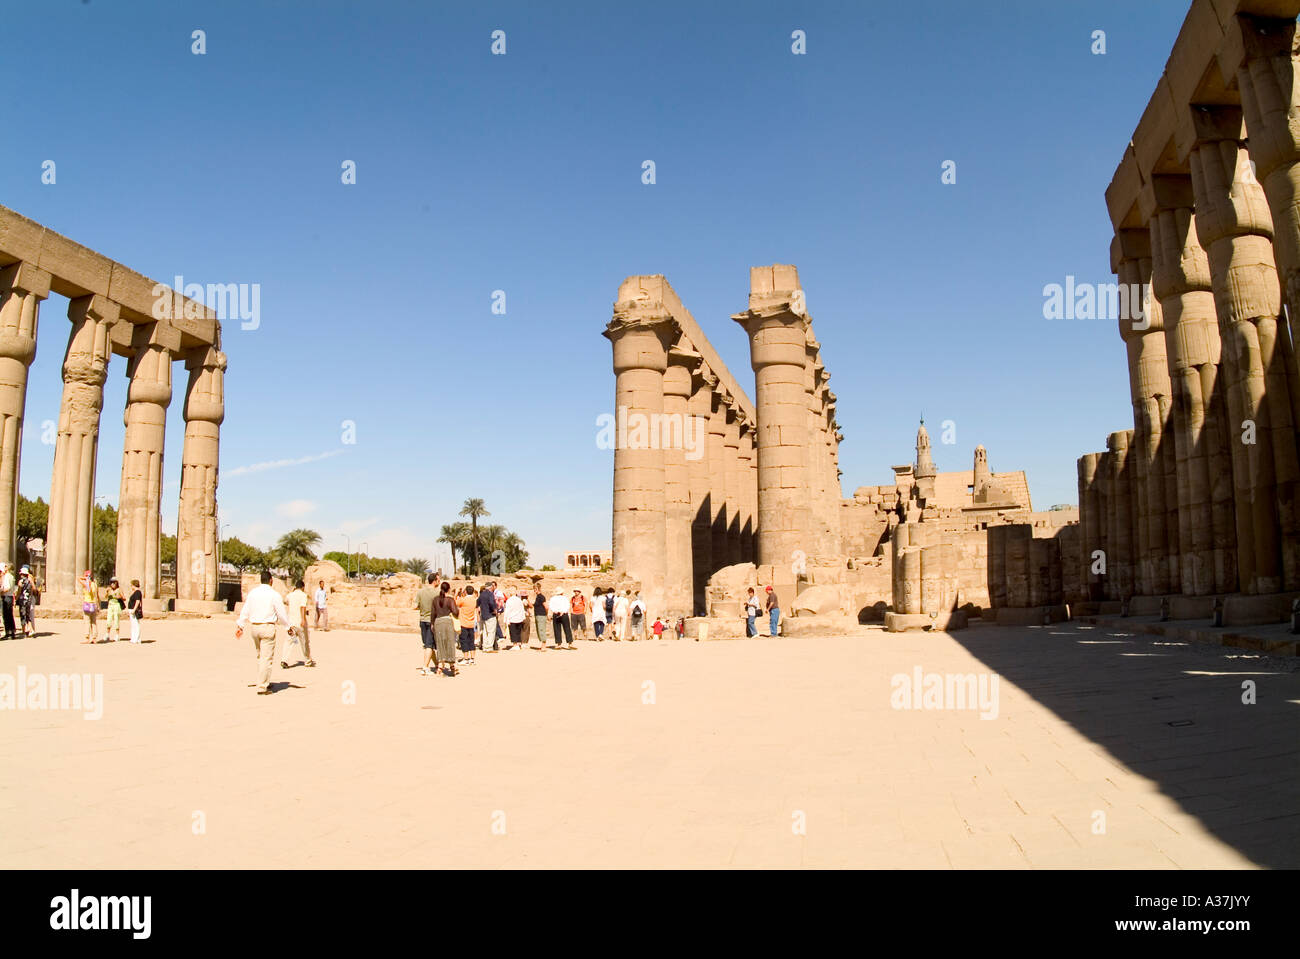 Columns For Decorations Luxor Temple Columns Hieroglyphics Ramses Ii Nefertari Decorations